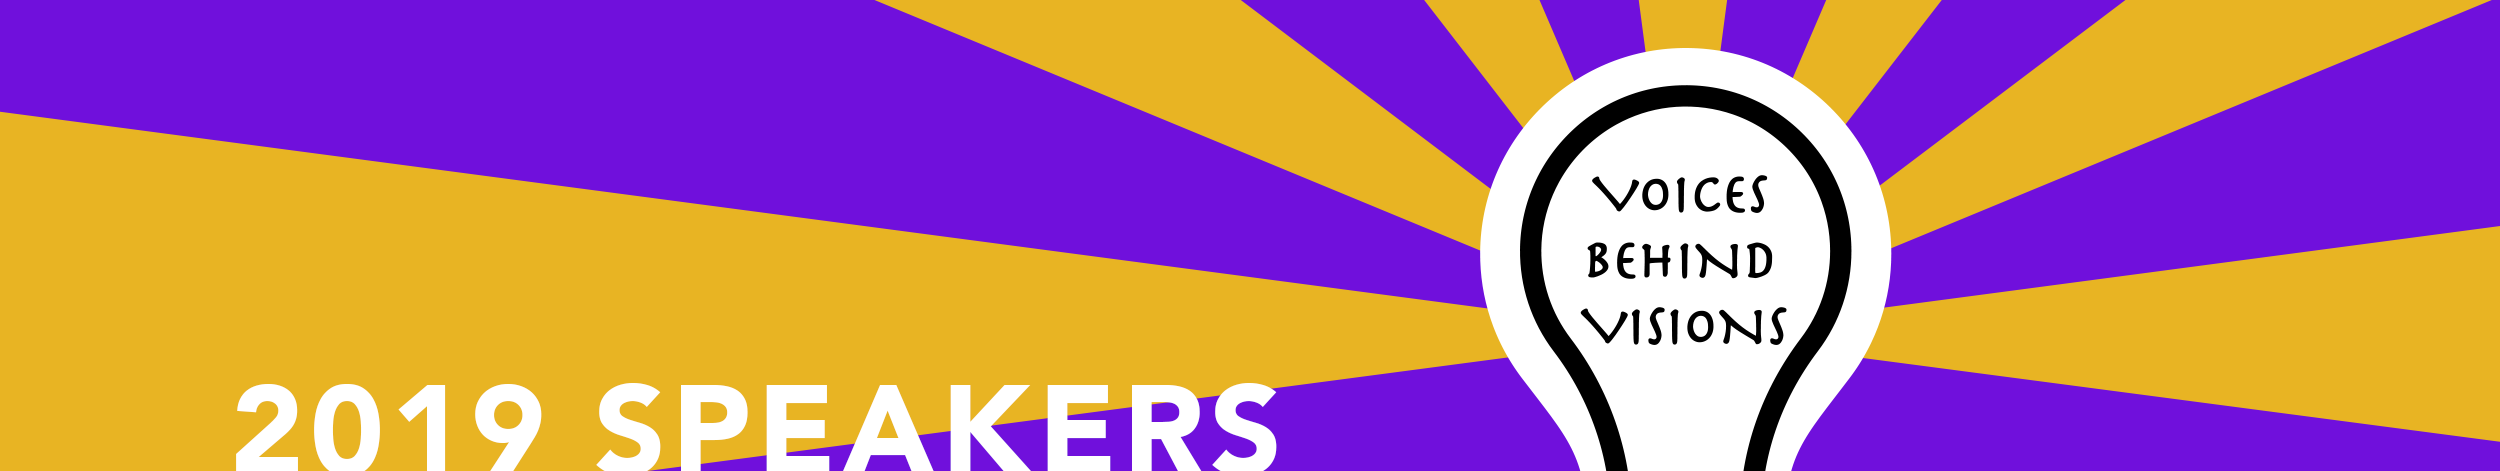 2019Speakers_banner.png